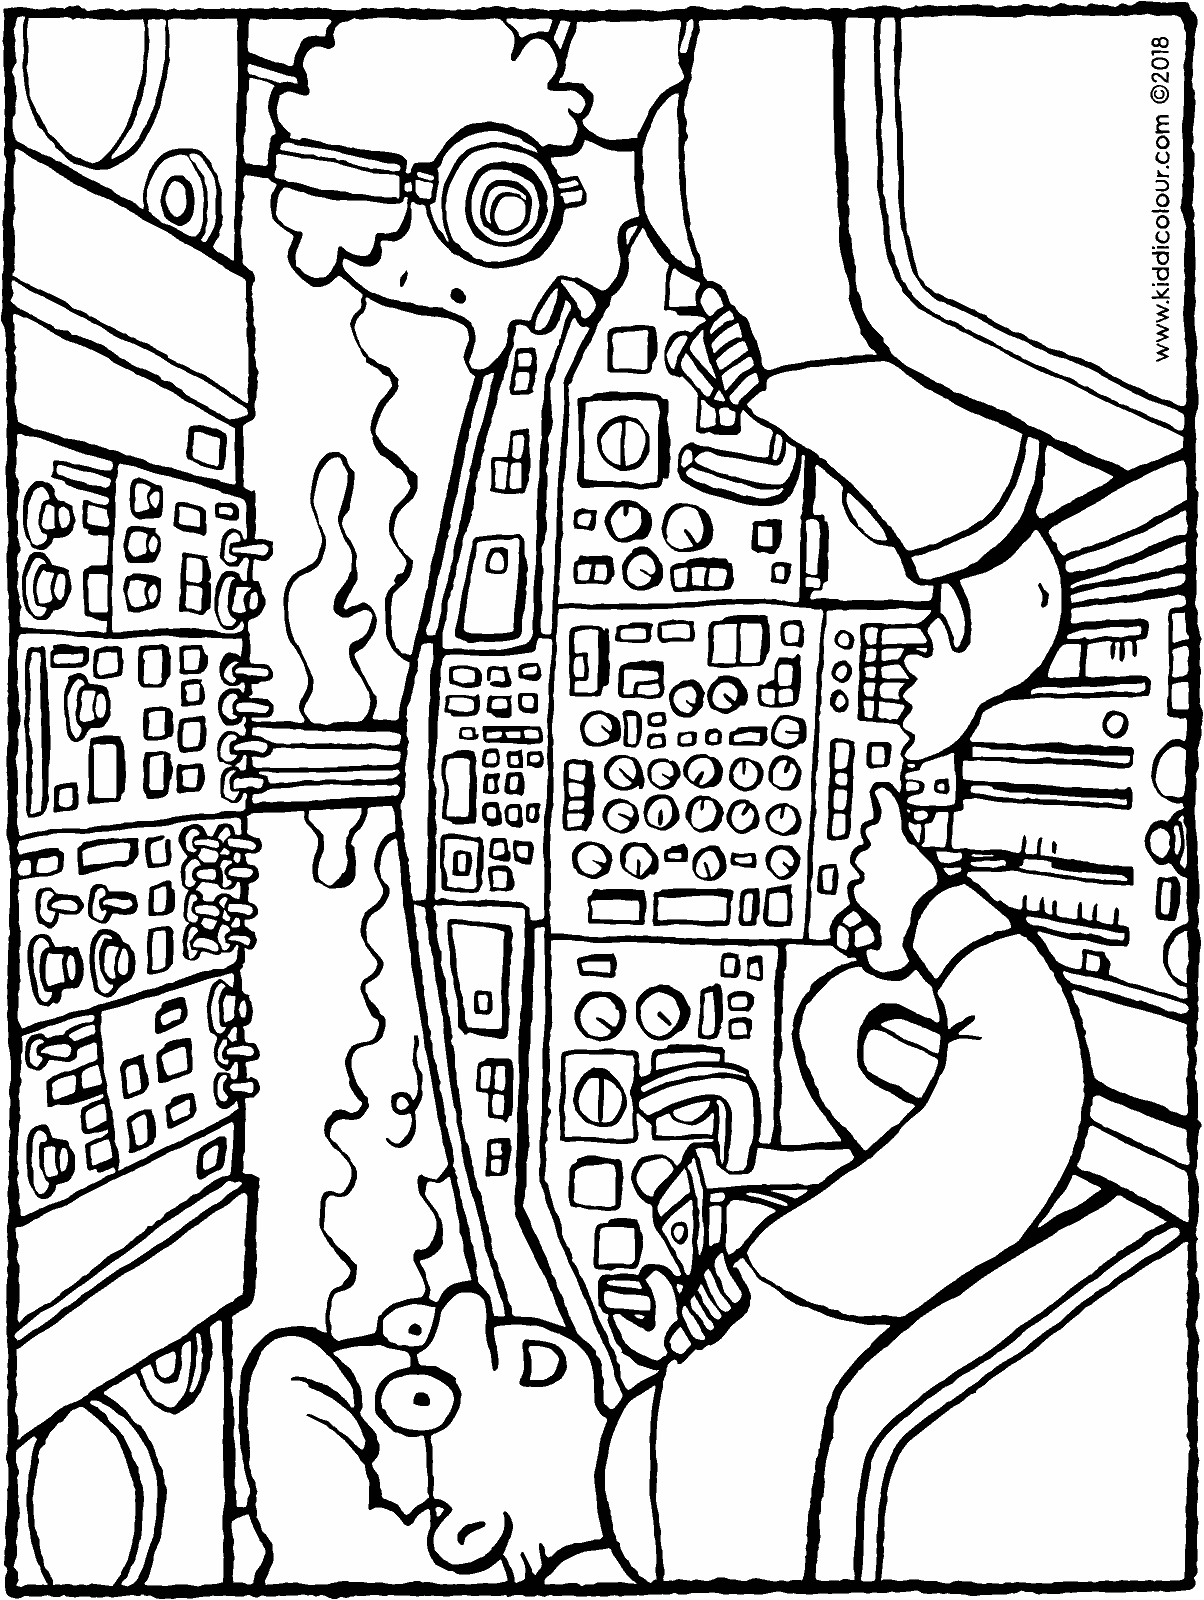 pilots in the cockpit colouring page drawing picture 01H